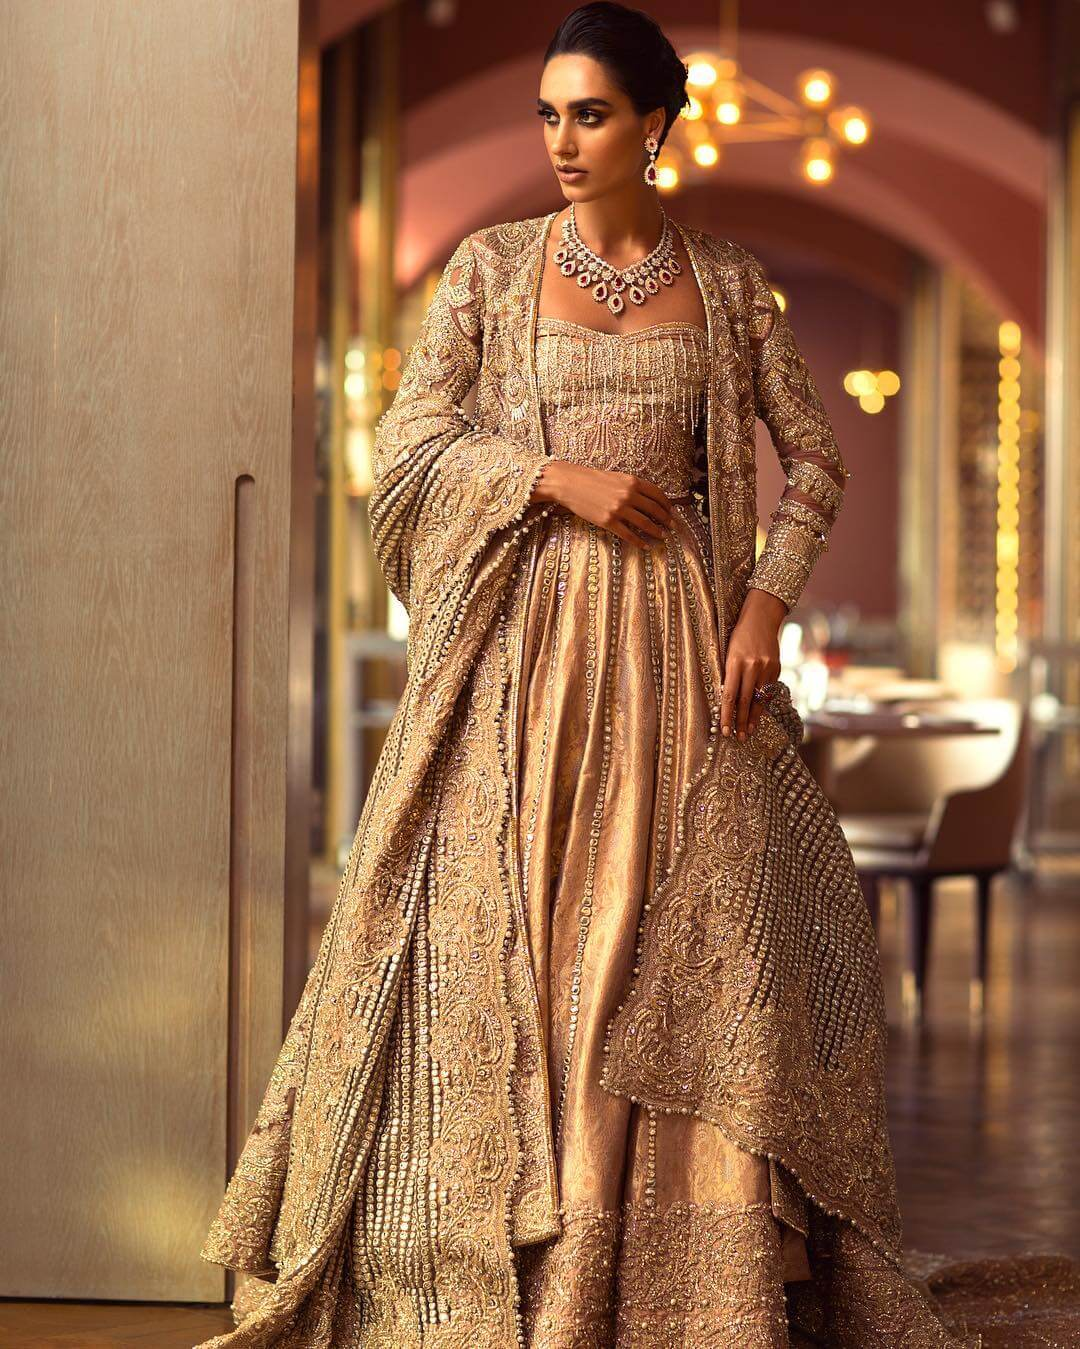 Jacket and skirt bridal wear HORIZON GLEAM from Faraz Manan LUMIERE S/S18 collection